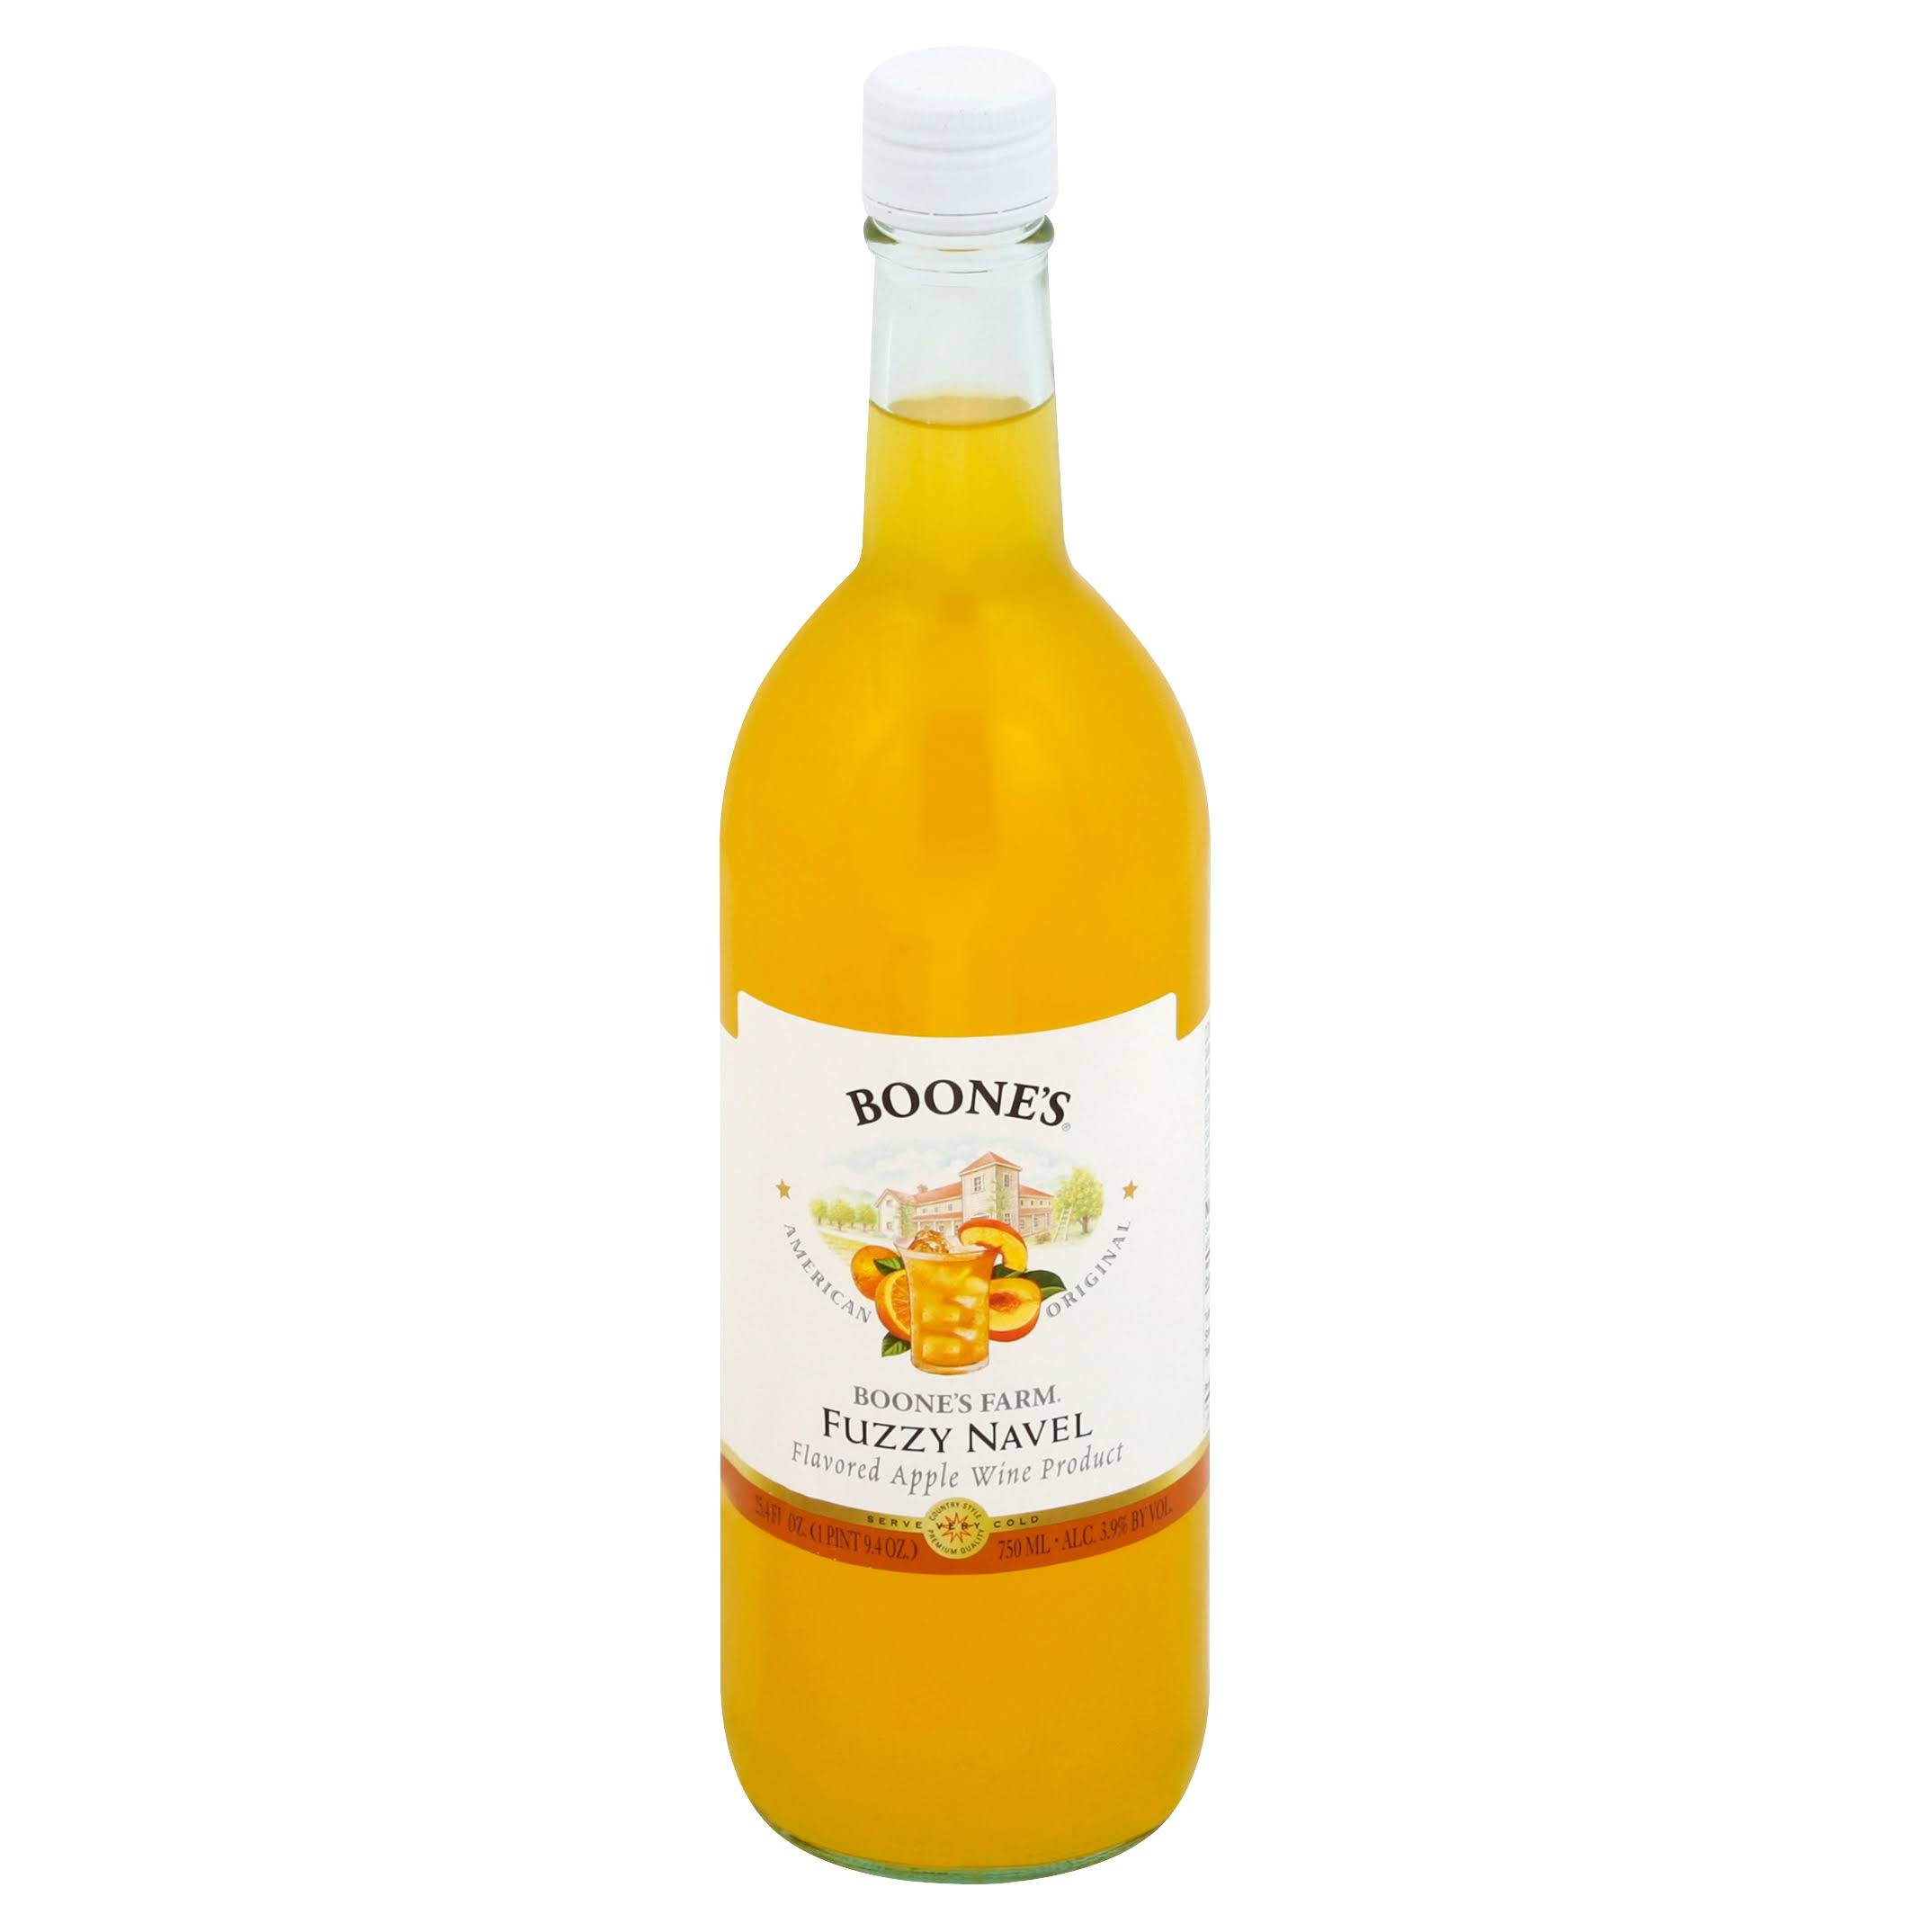 Boones Farm Wine Product, Apple, Fuzzy Navel Flavored - 25.4 fl oz